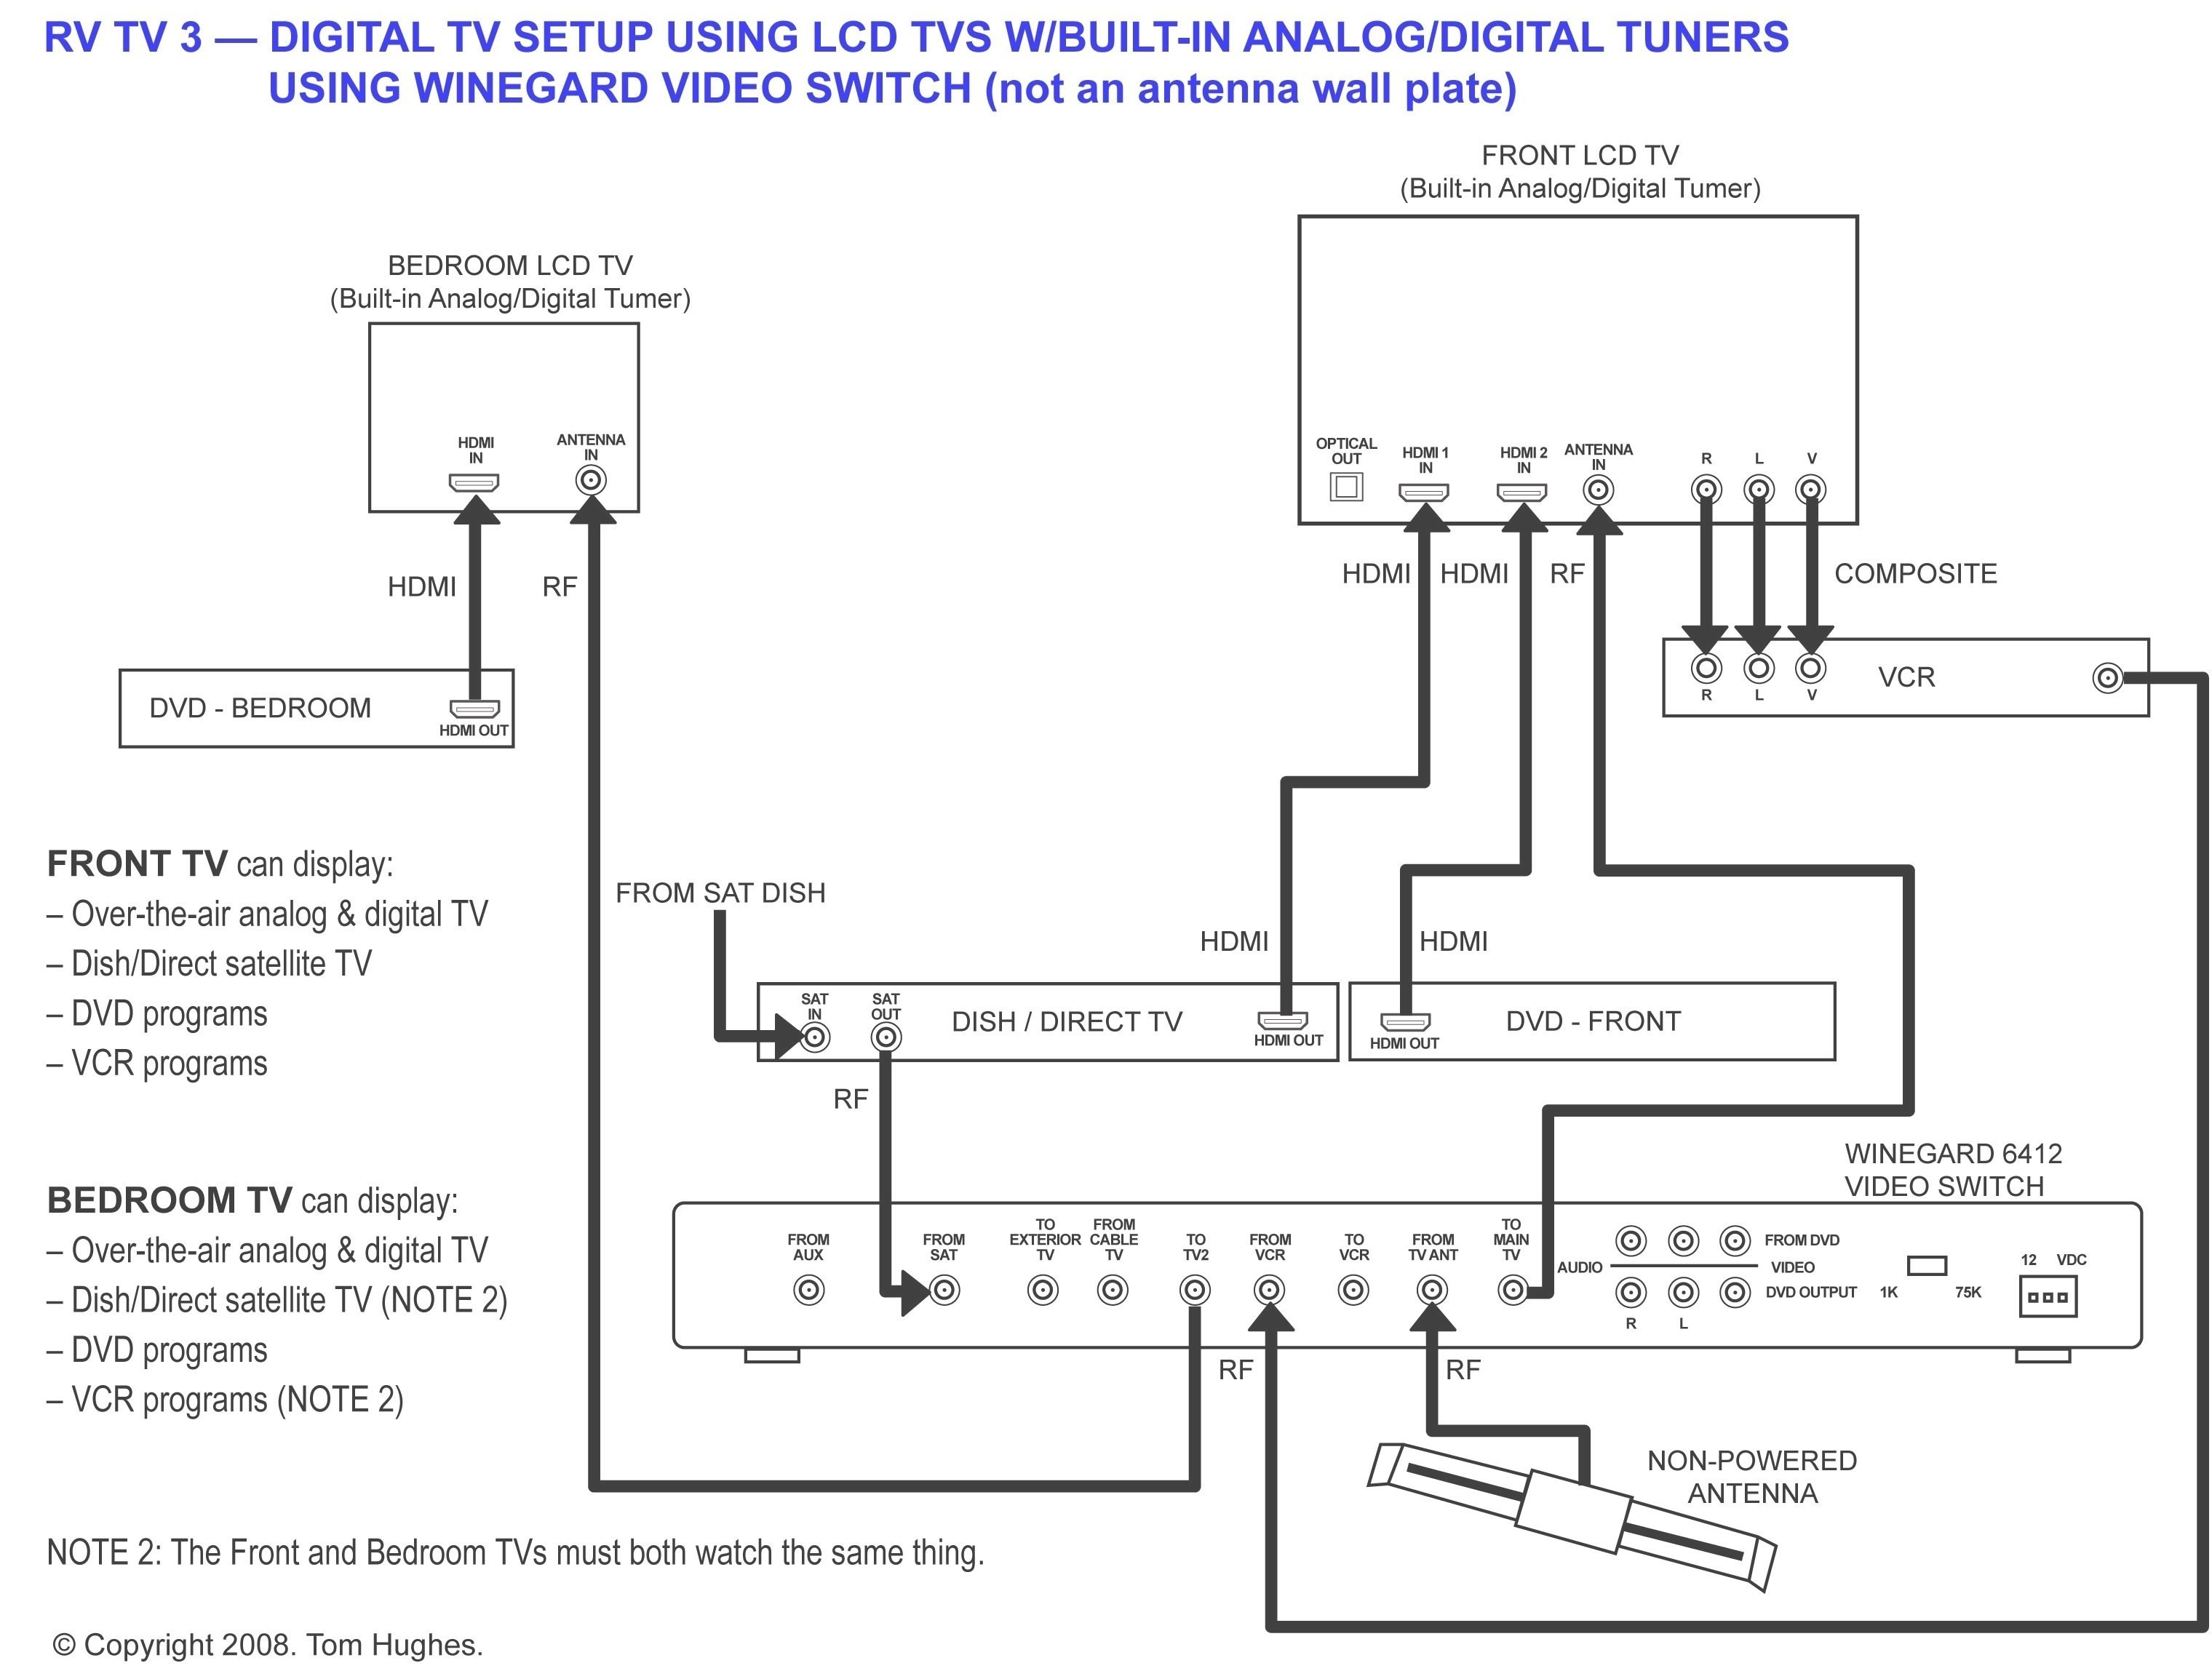 directv wiring diagram Download-Wiring Diagram Quad Lnb Print Directv Swm 8 Wiring Diagrams Also Directv Swm Wiring Diagram 4-n